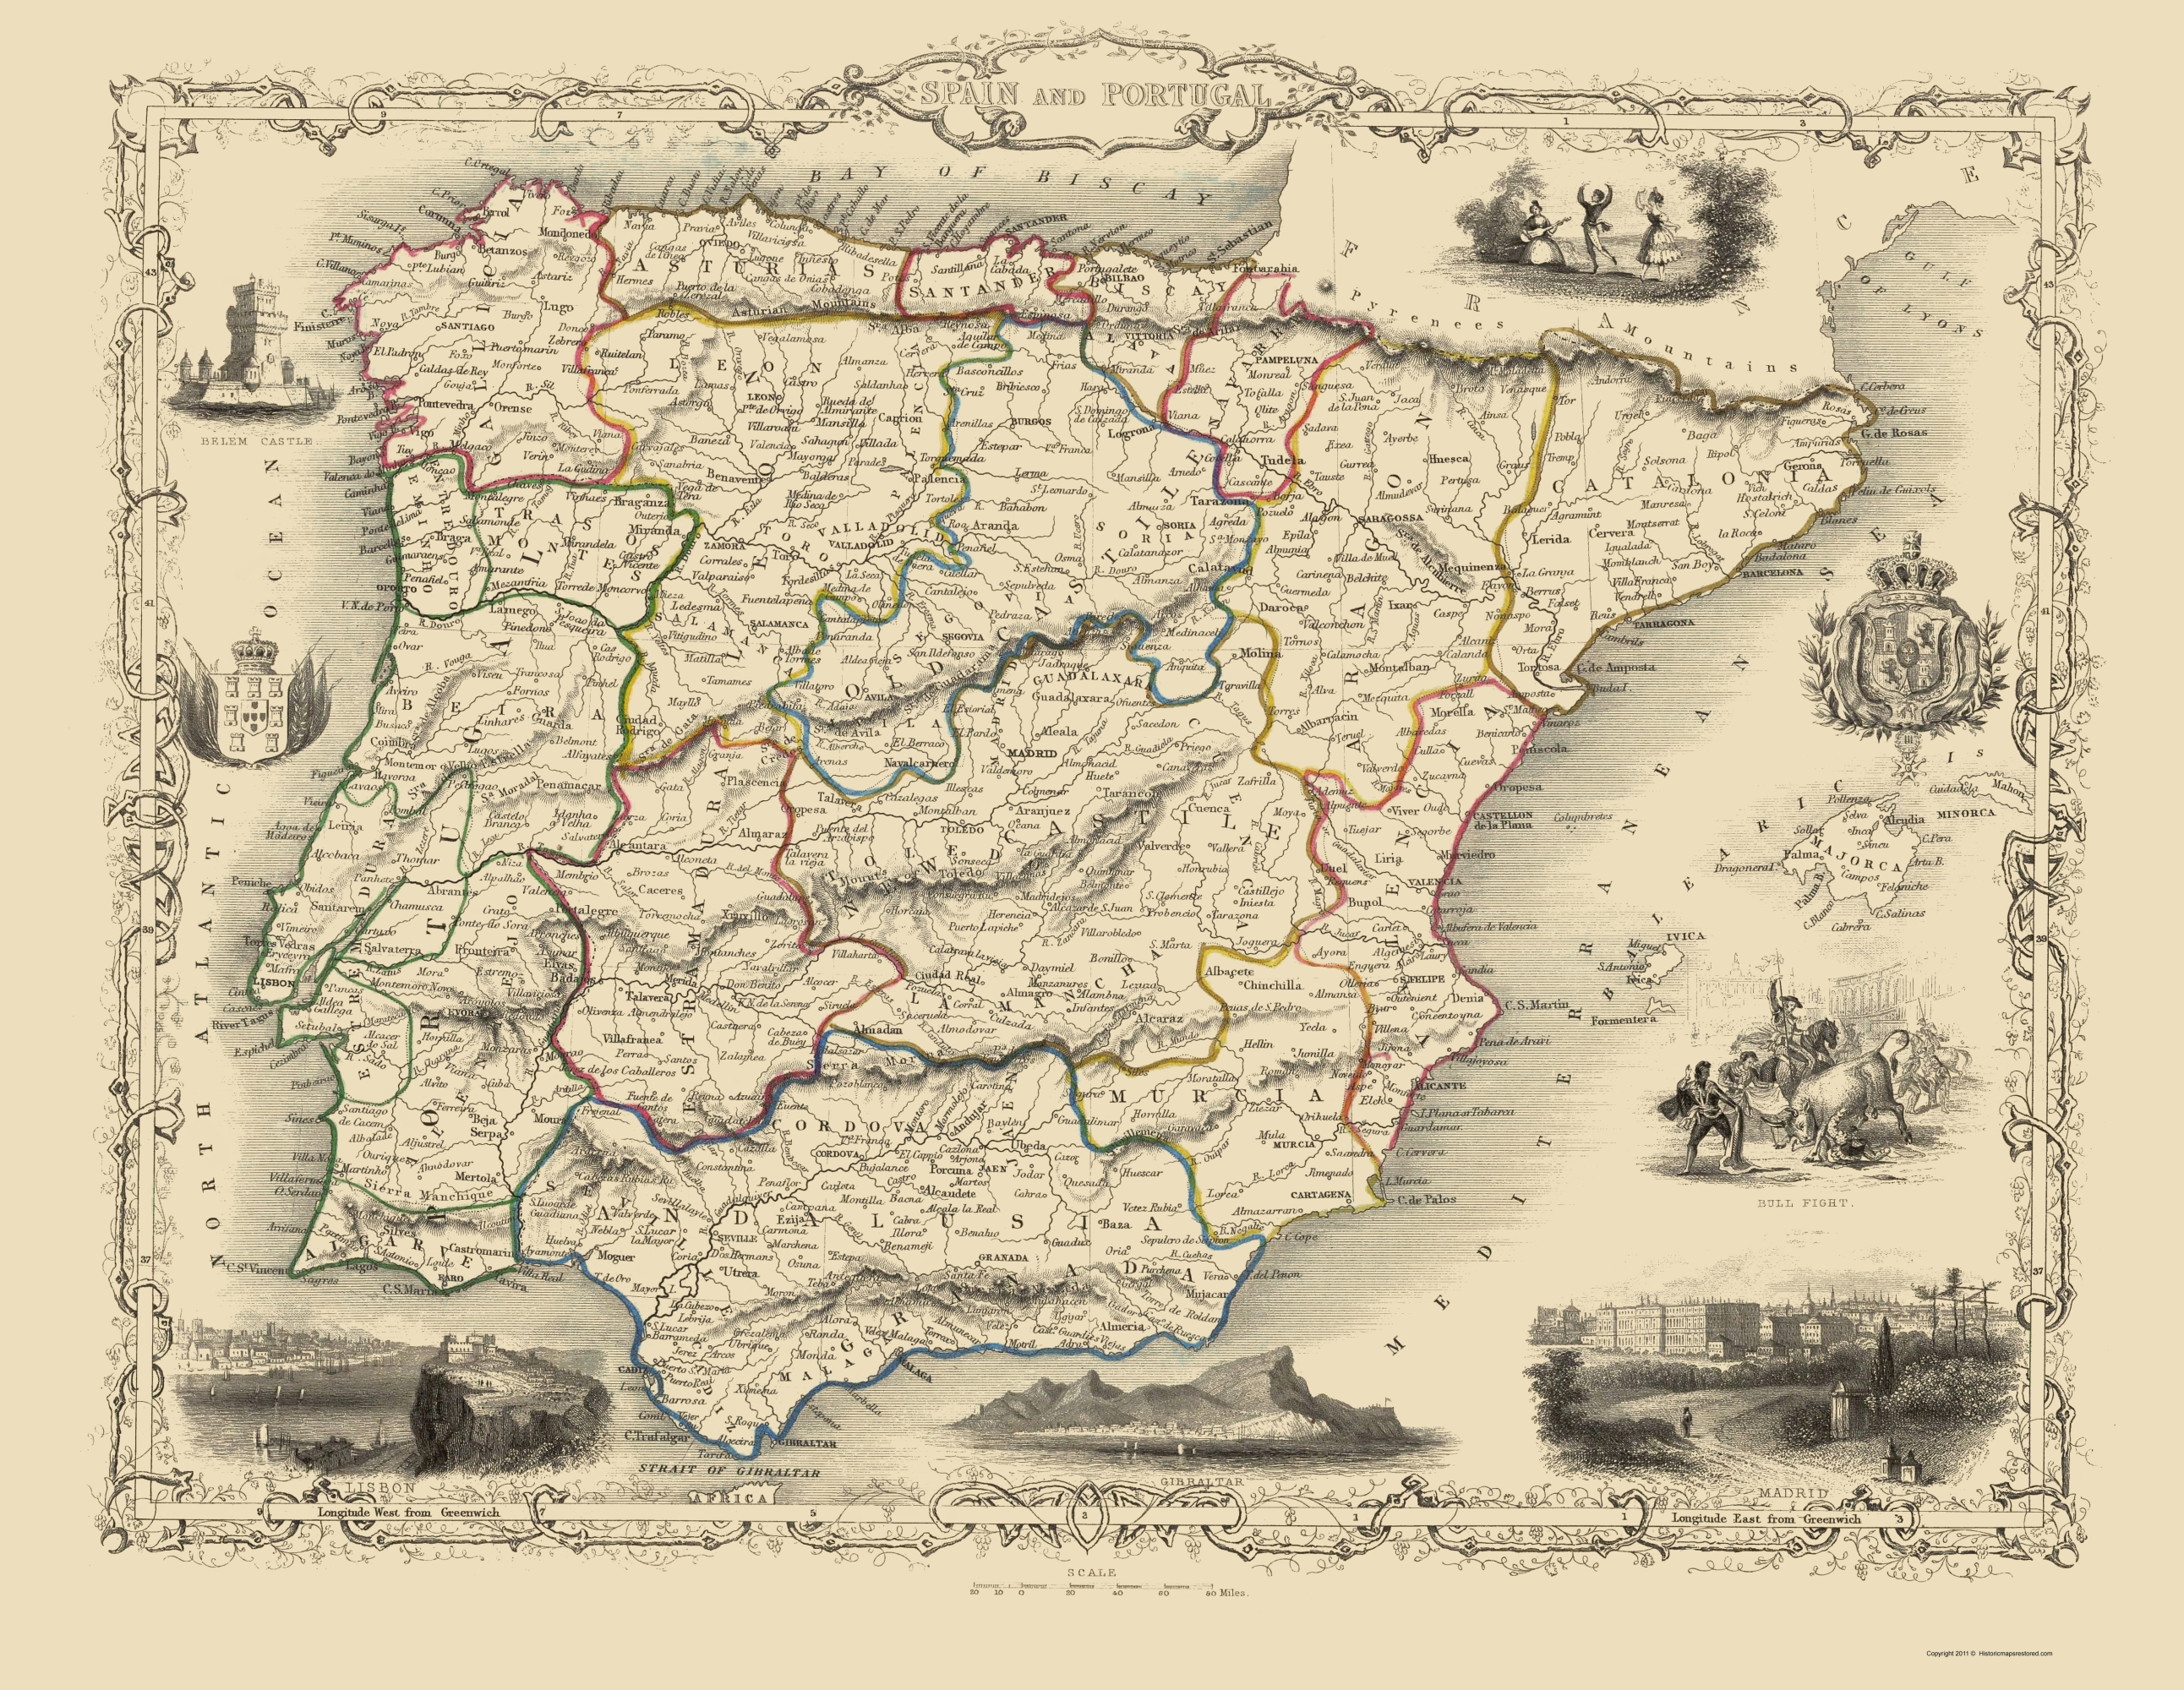 Old Iberian Peninsula Map - Spain and Portugal - 1800 - 23 x 29.72